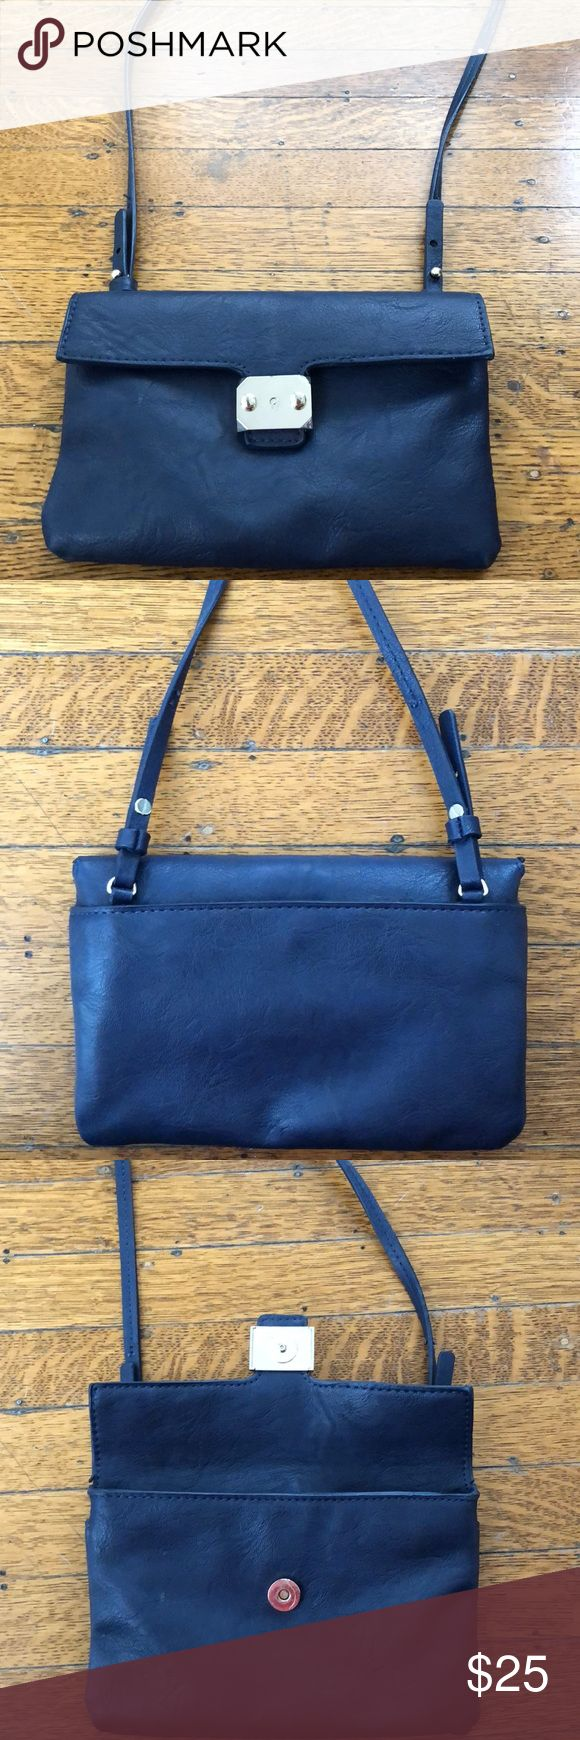 Zara basic small shoulder bag Navy blue Zara Collection shoulder bag in soft, grained imitation leather with a narrow shoulder strap, foldover flap with a magnetic fastener. Perfect for carrying your phone and other essentials on a night out. Slightly used. Zara Bags Shoulder Bags